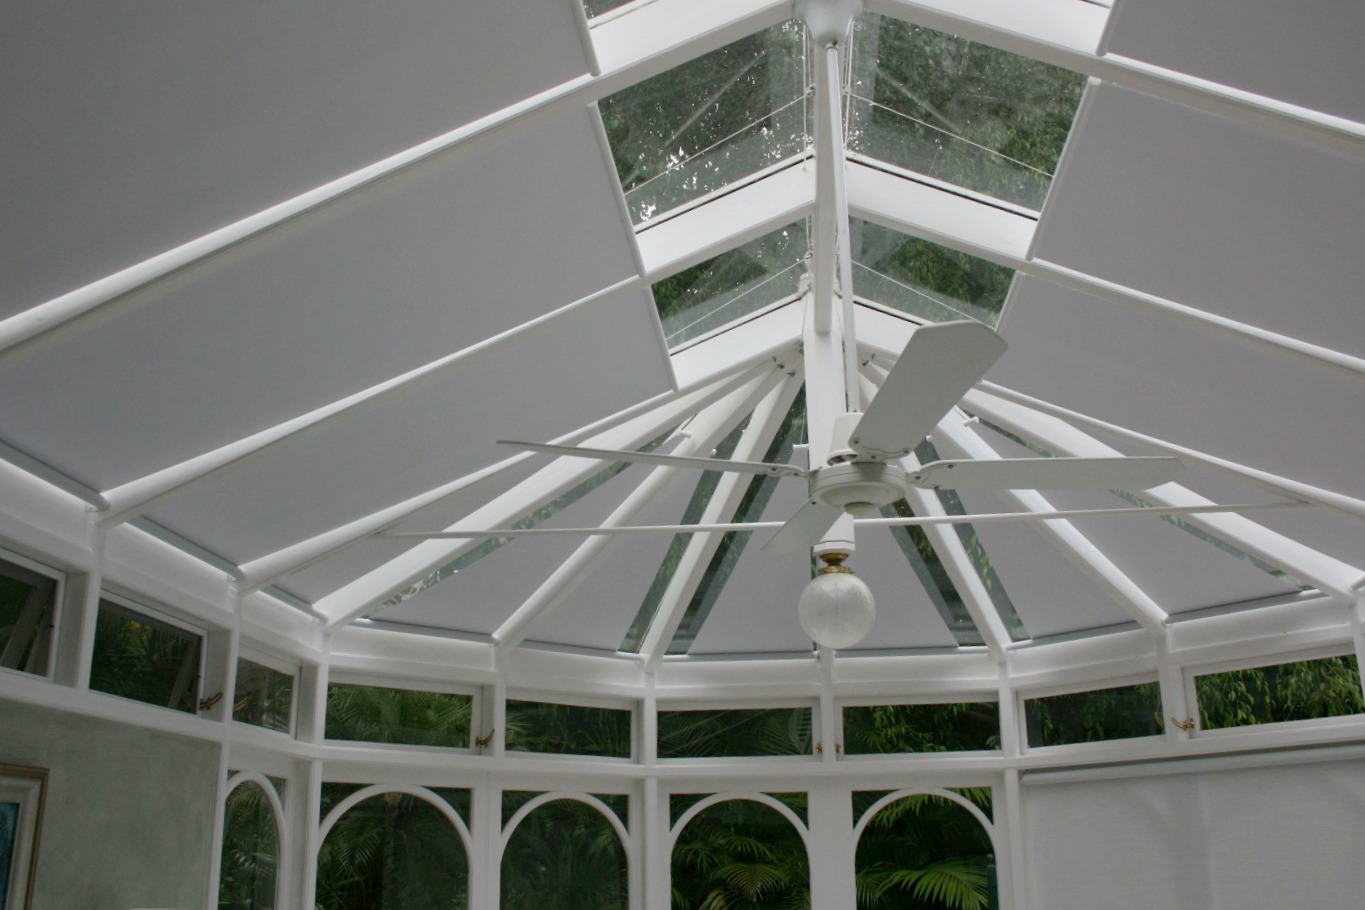 Grovewood Conservatory Blinds 1 smaller_edited